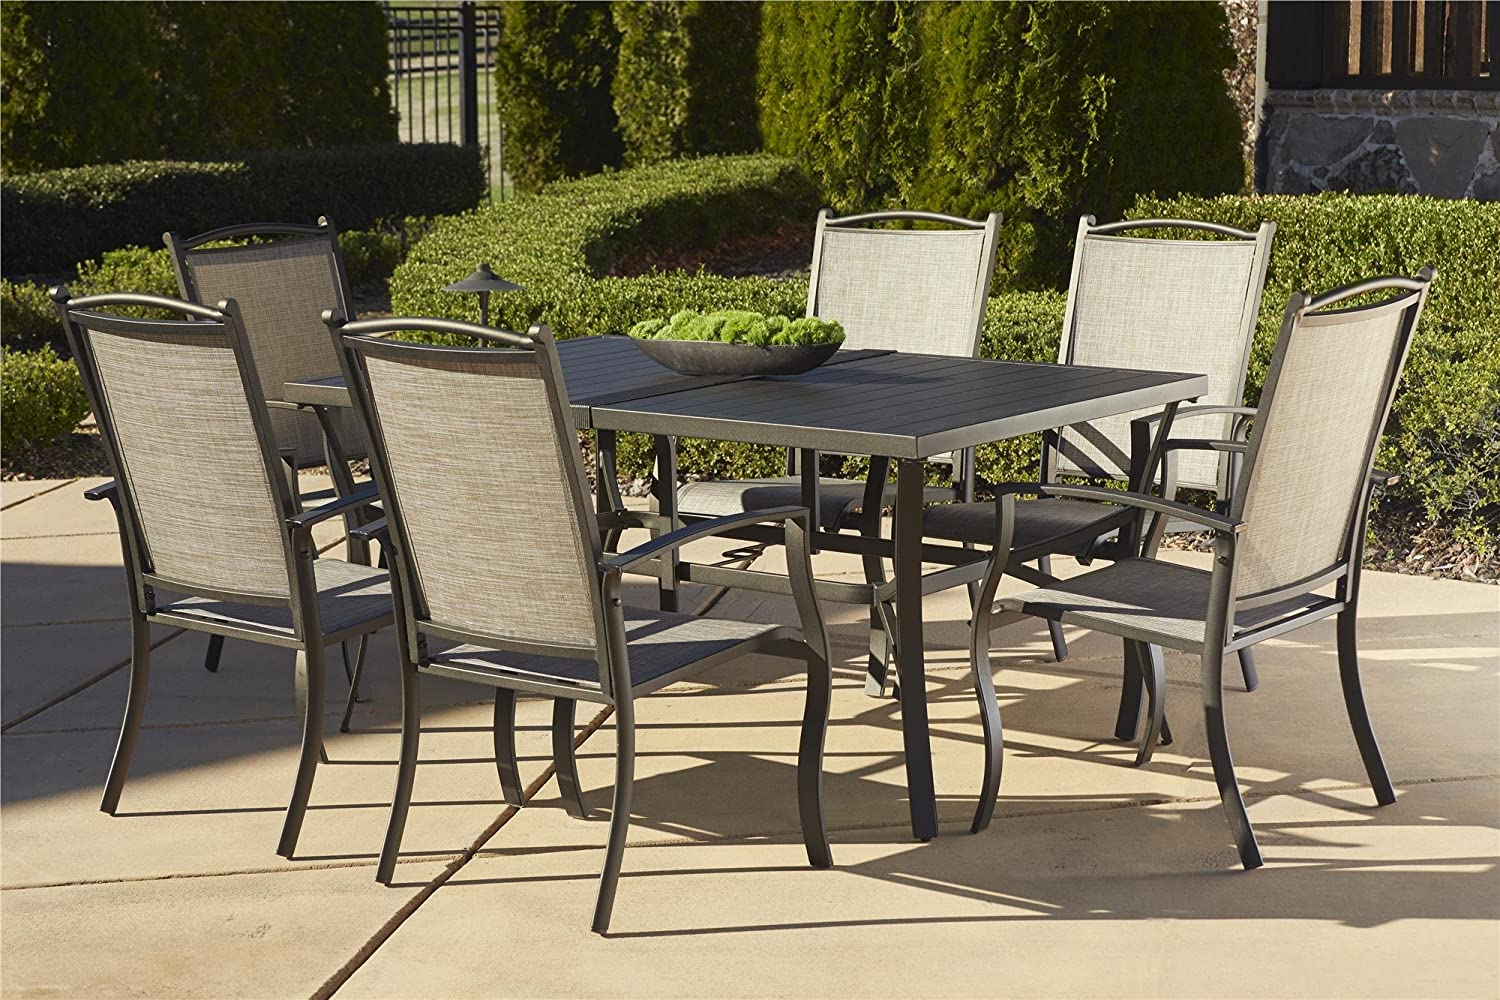 patio tan set cedar piece monaco furniture sling frame with pd dining hanover outdoor shop metal